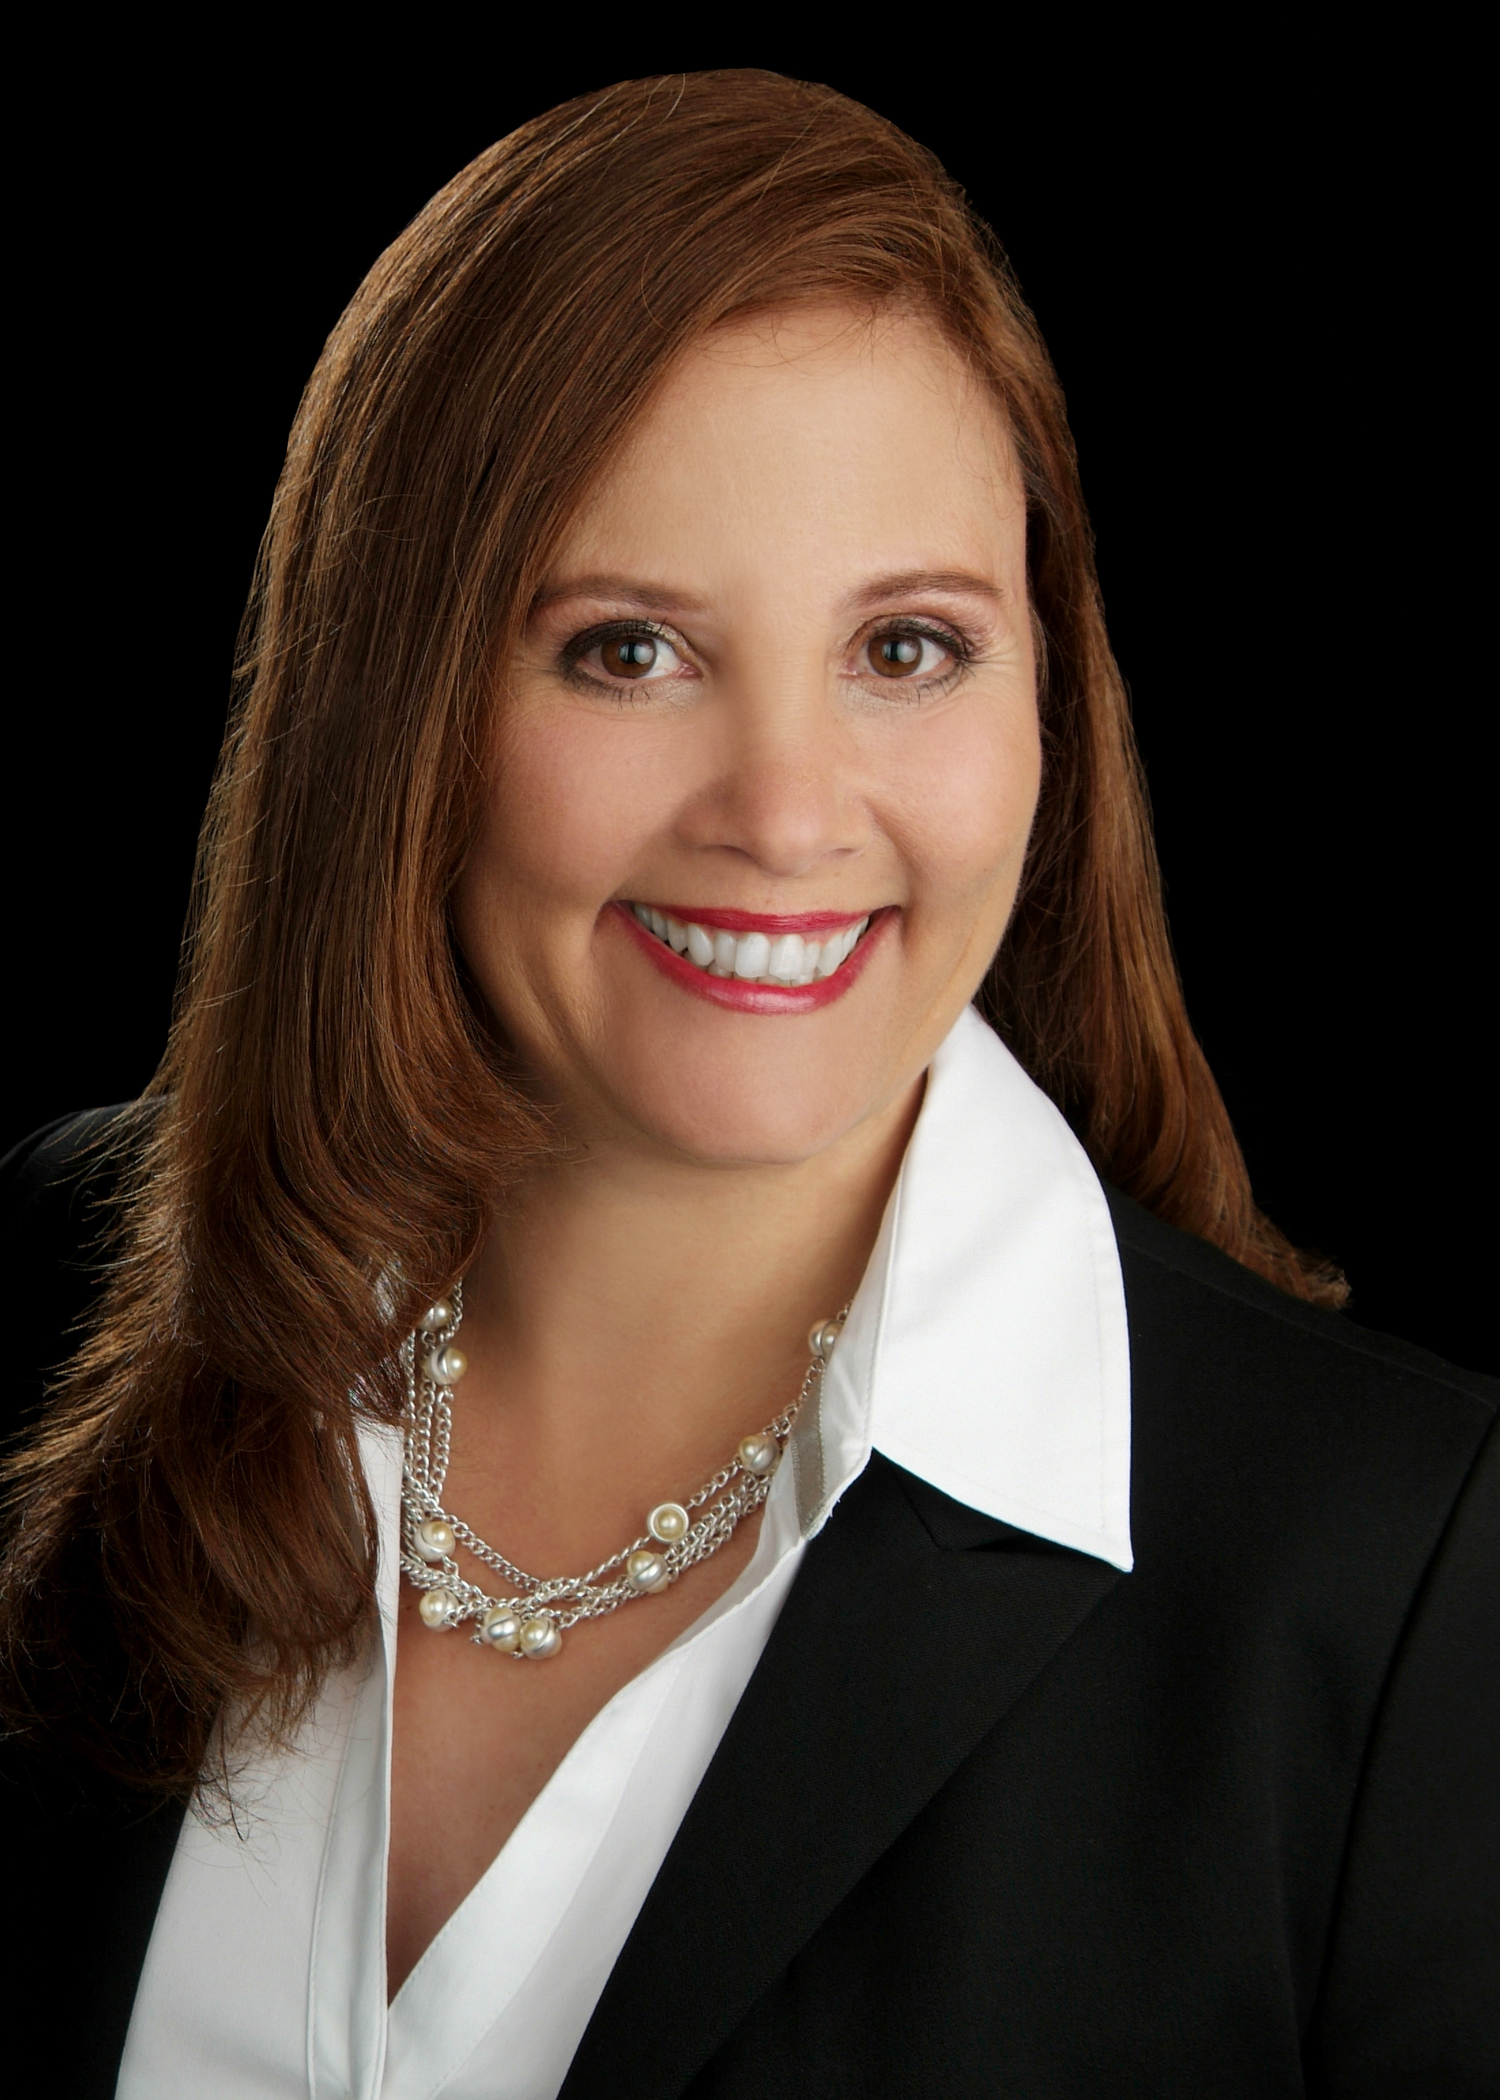 Profile Photo for Brenda Mullen